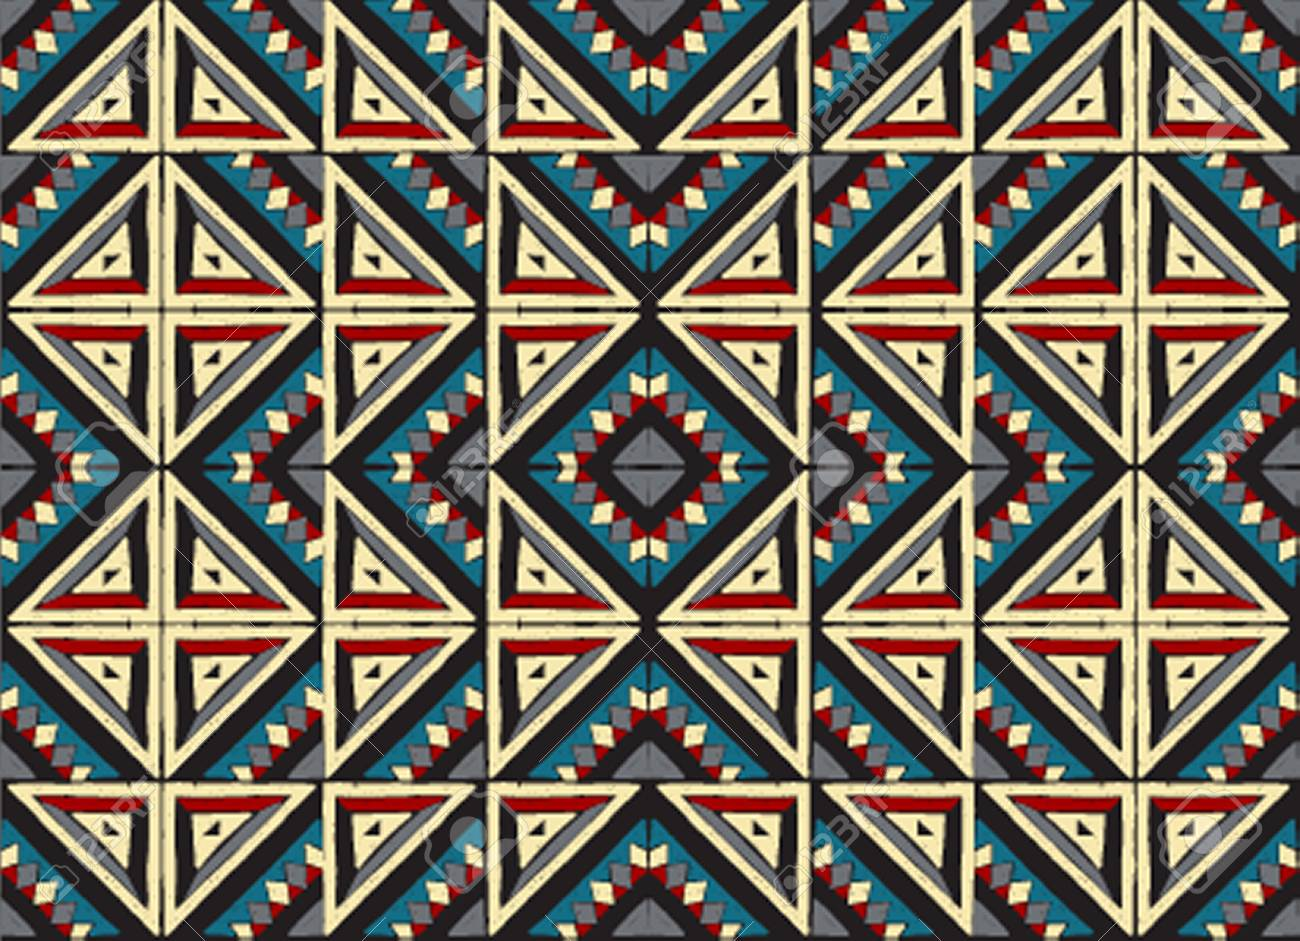 Aztec Tapijt Tribal Vector Ornament Seamless African Pattern Ethnic Carpet